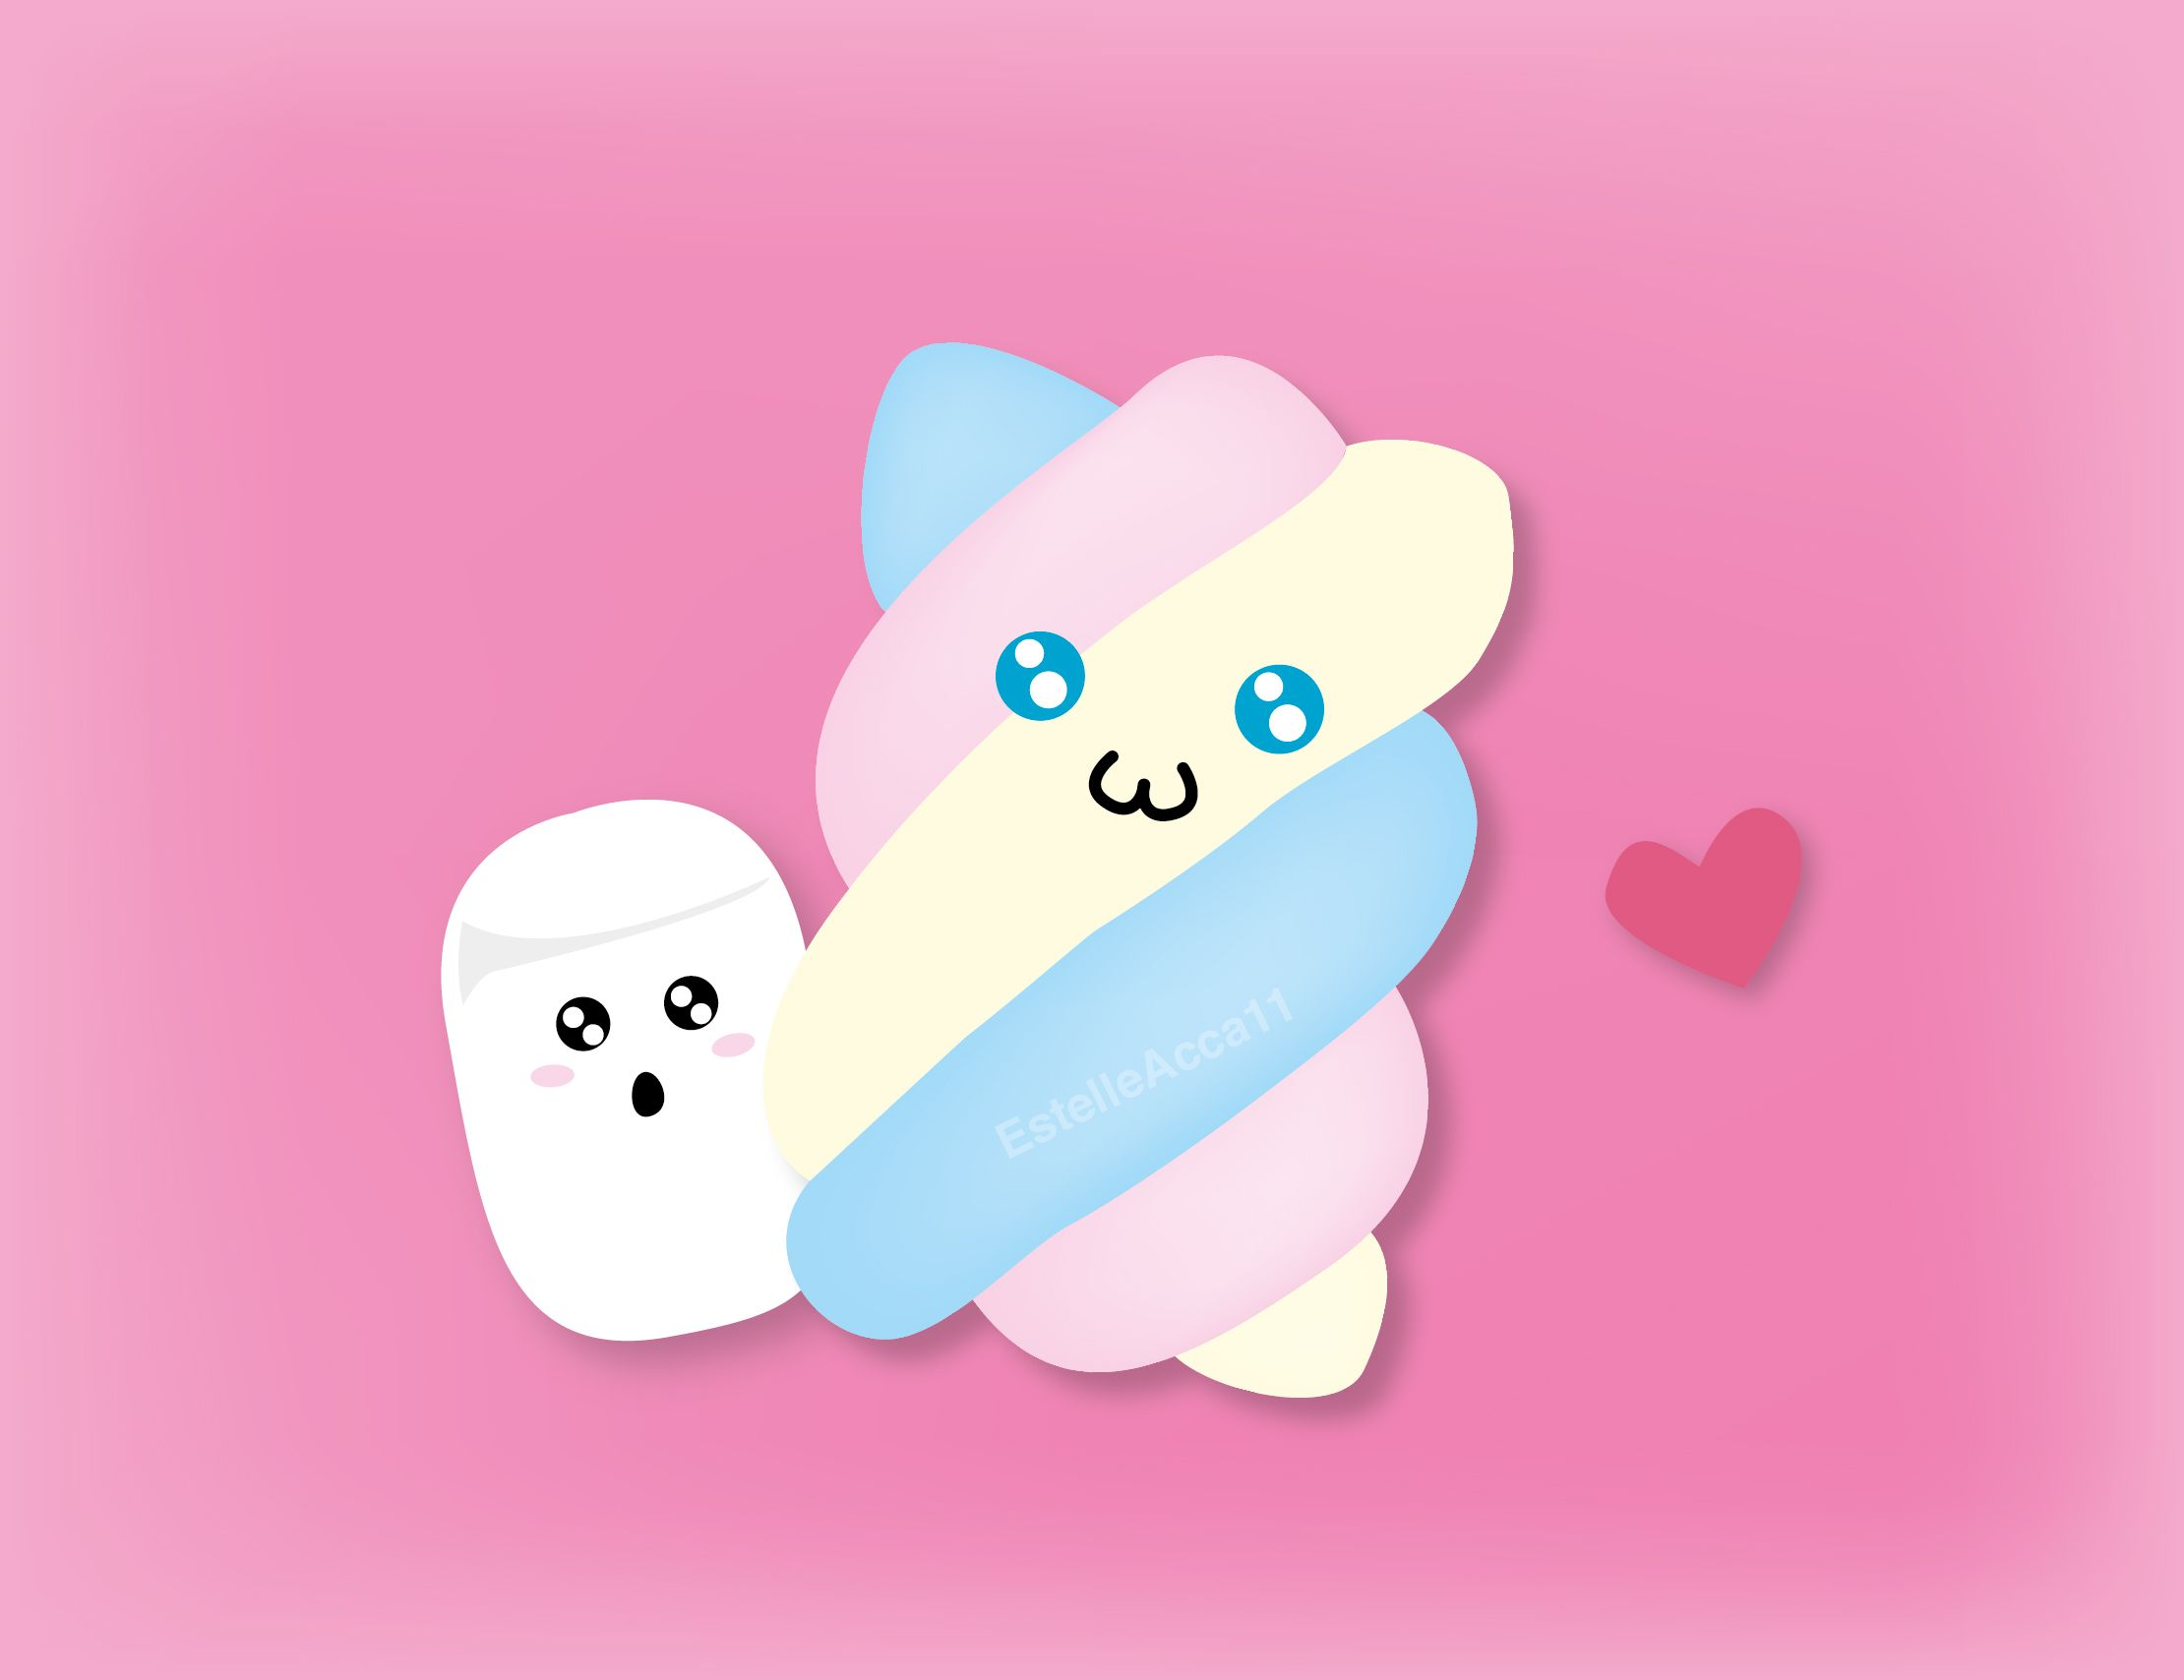 cute marshmallow images Google Search Cute